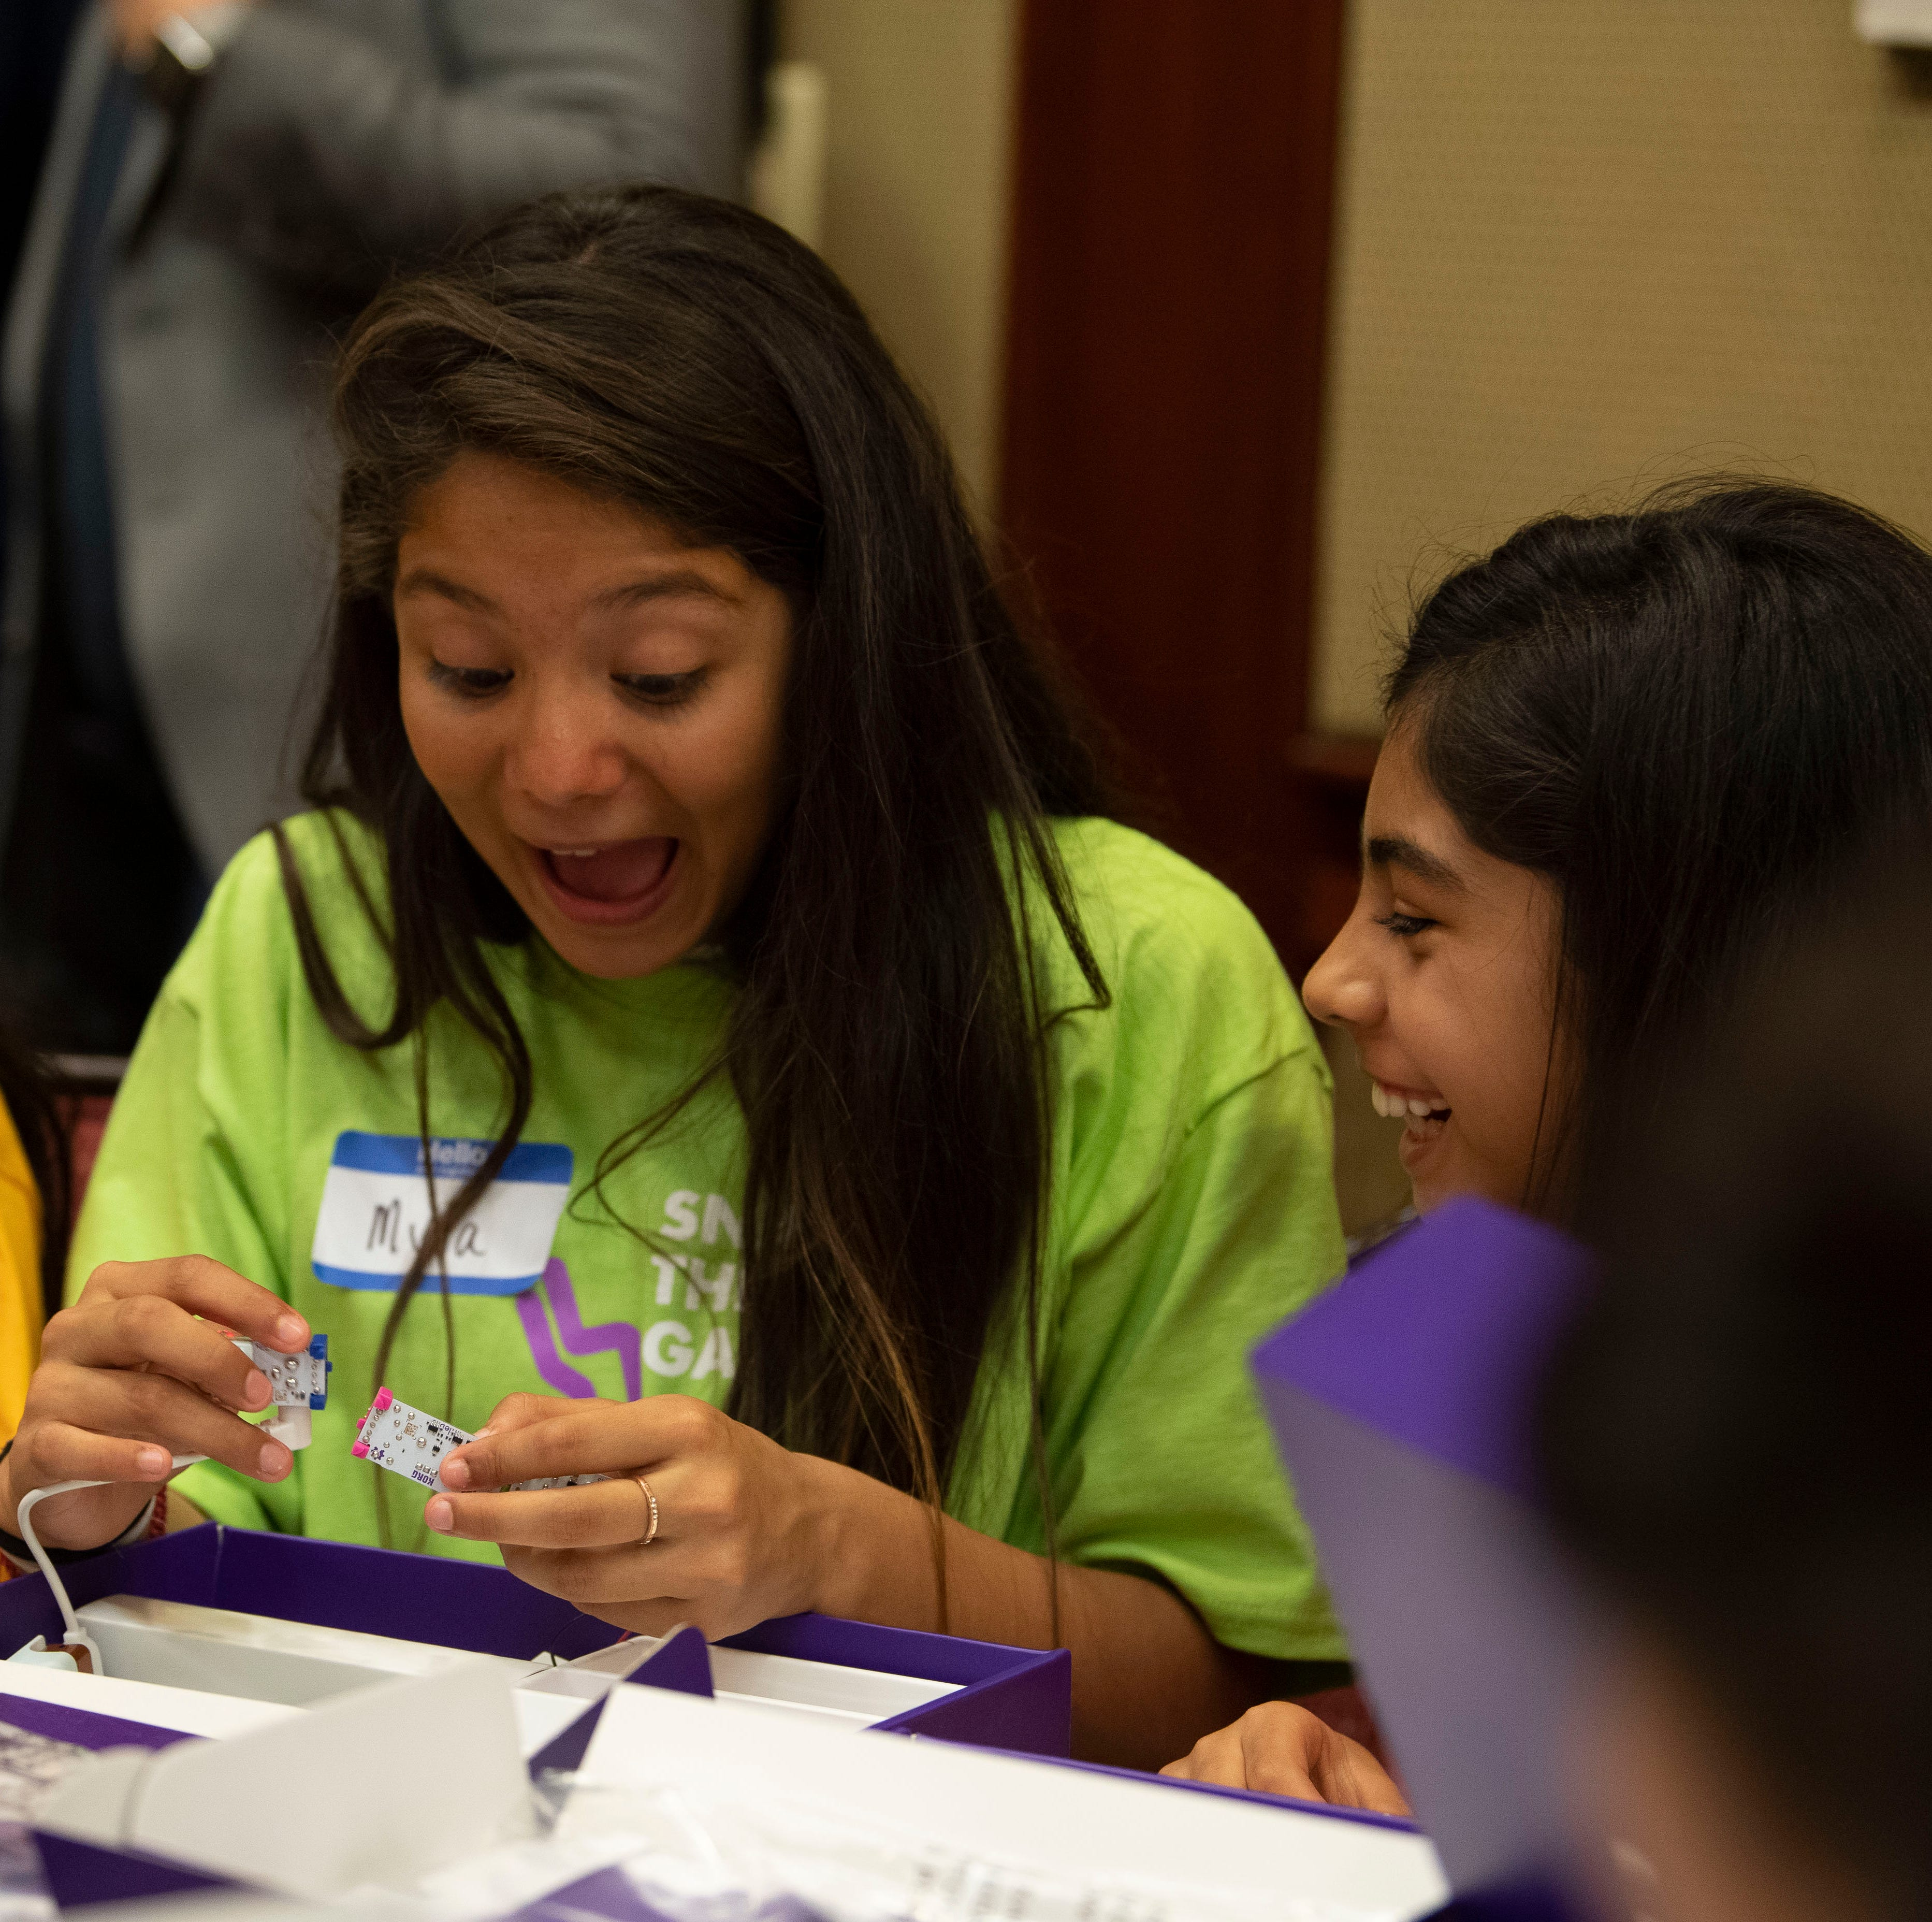 """Snap the Gap"" is a new Disney and littleBits program designed to get 10-year-old girls interested in STEM."